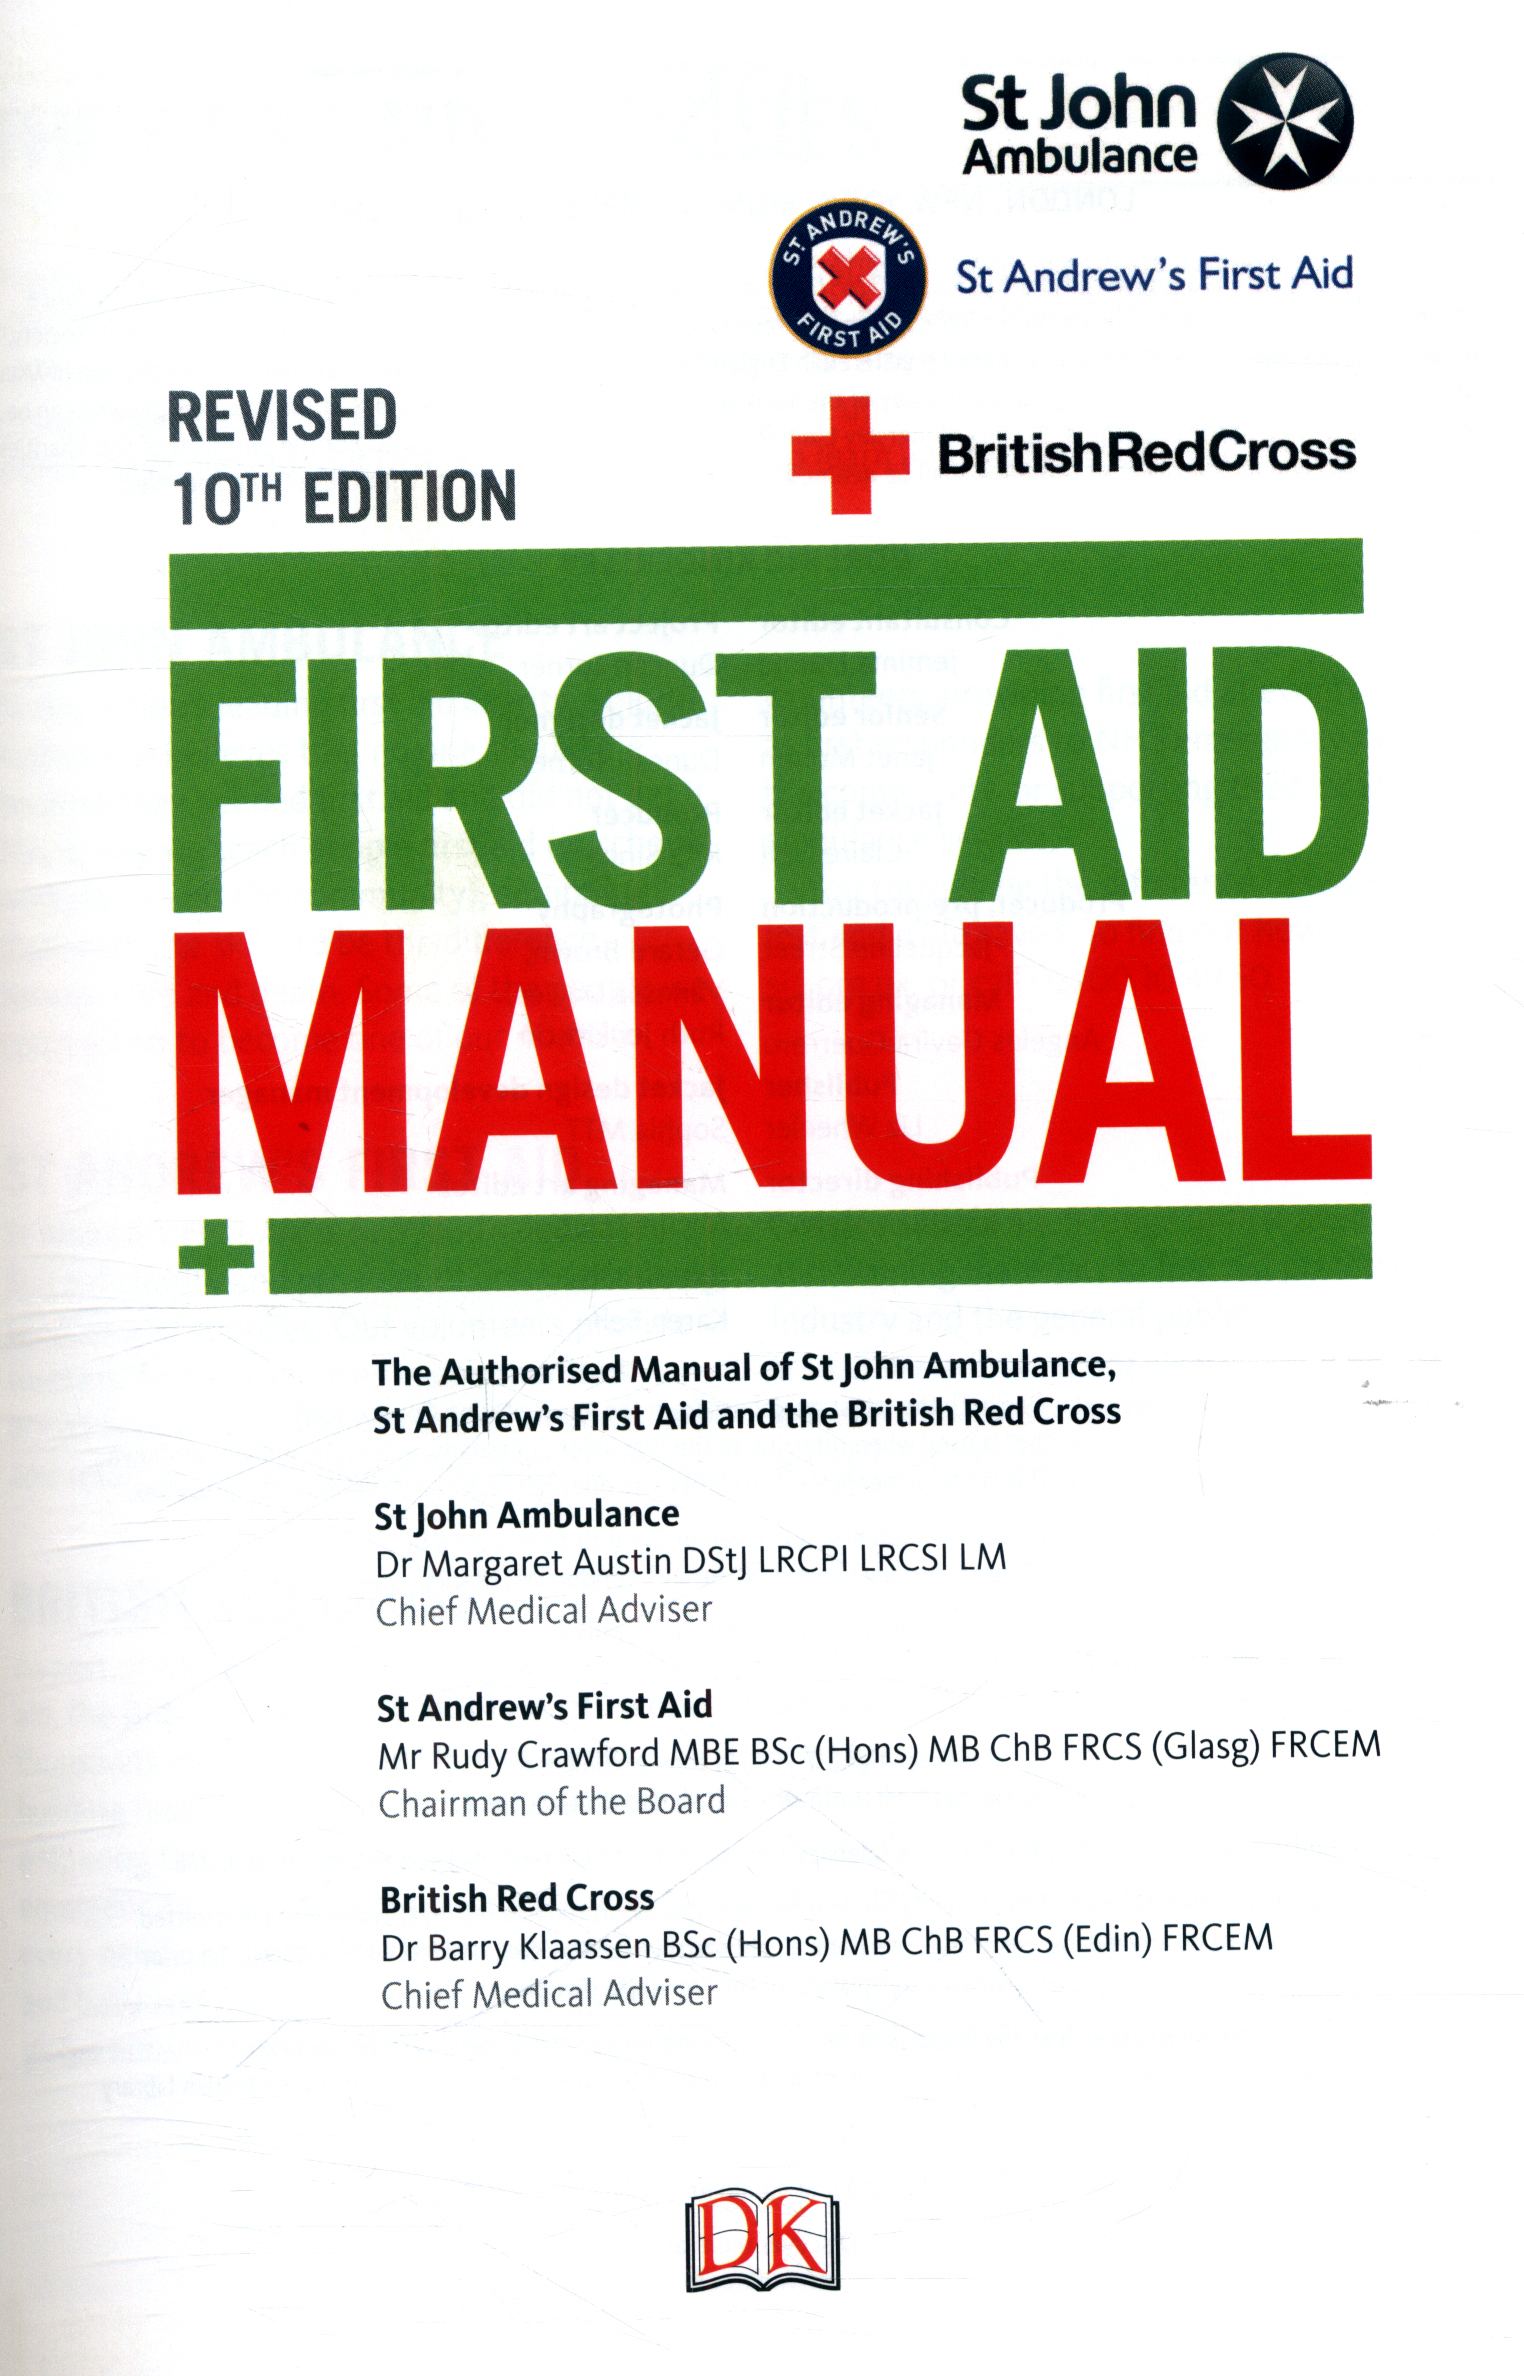 First aid manual : the authorised manual of St John Ambulance, St Andrews First  Aid and the British Red Cross. (Revised 10th edition)